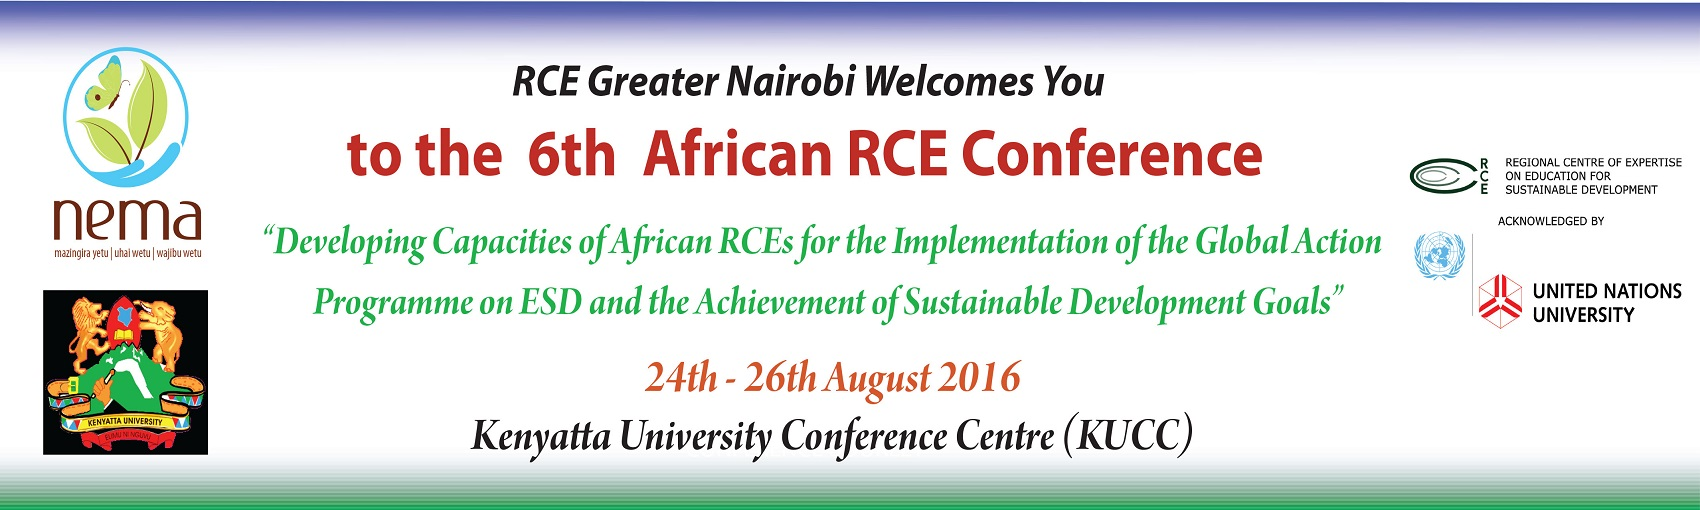 The 6th African RCE Conference